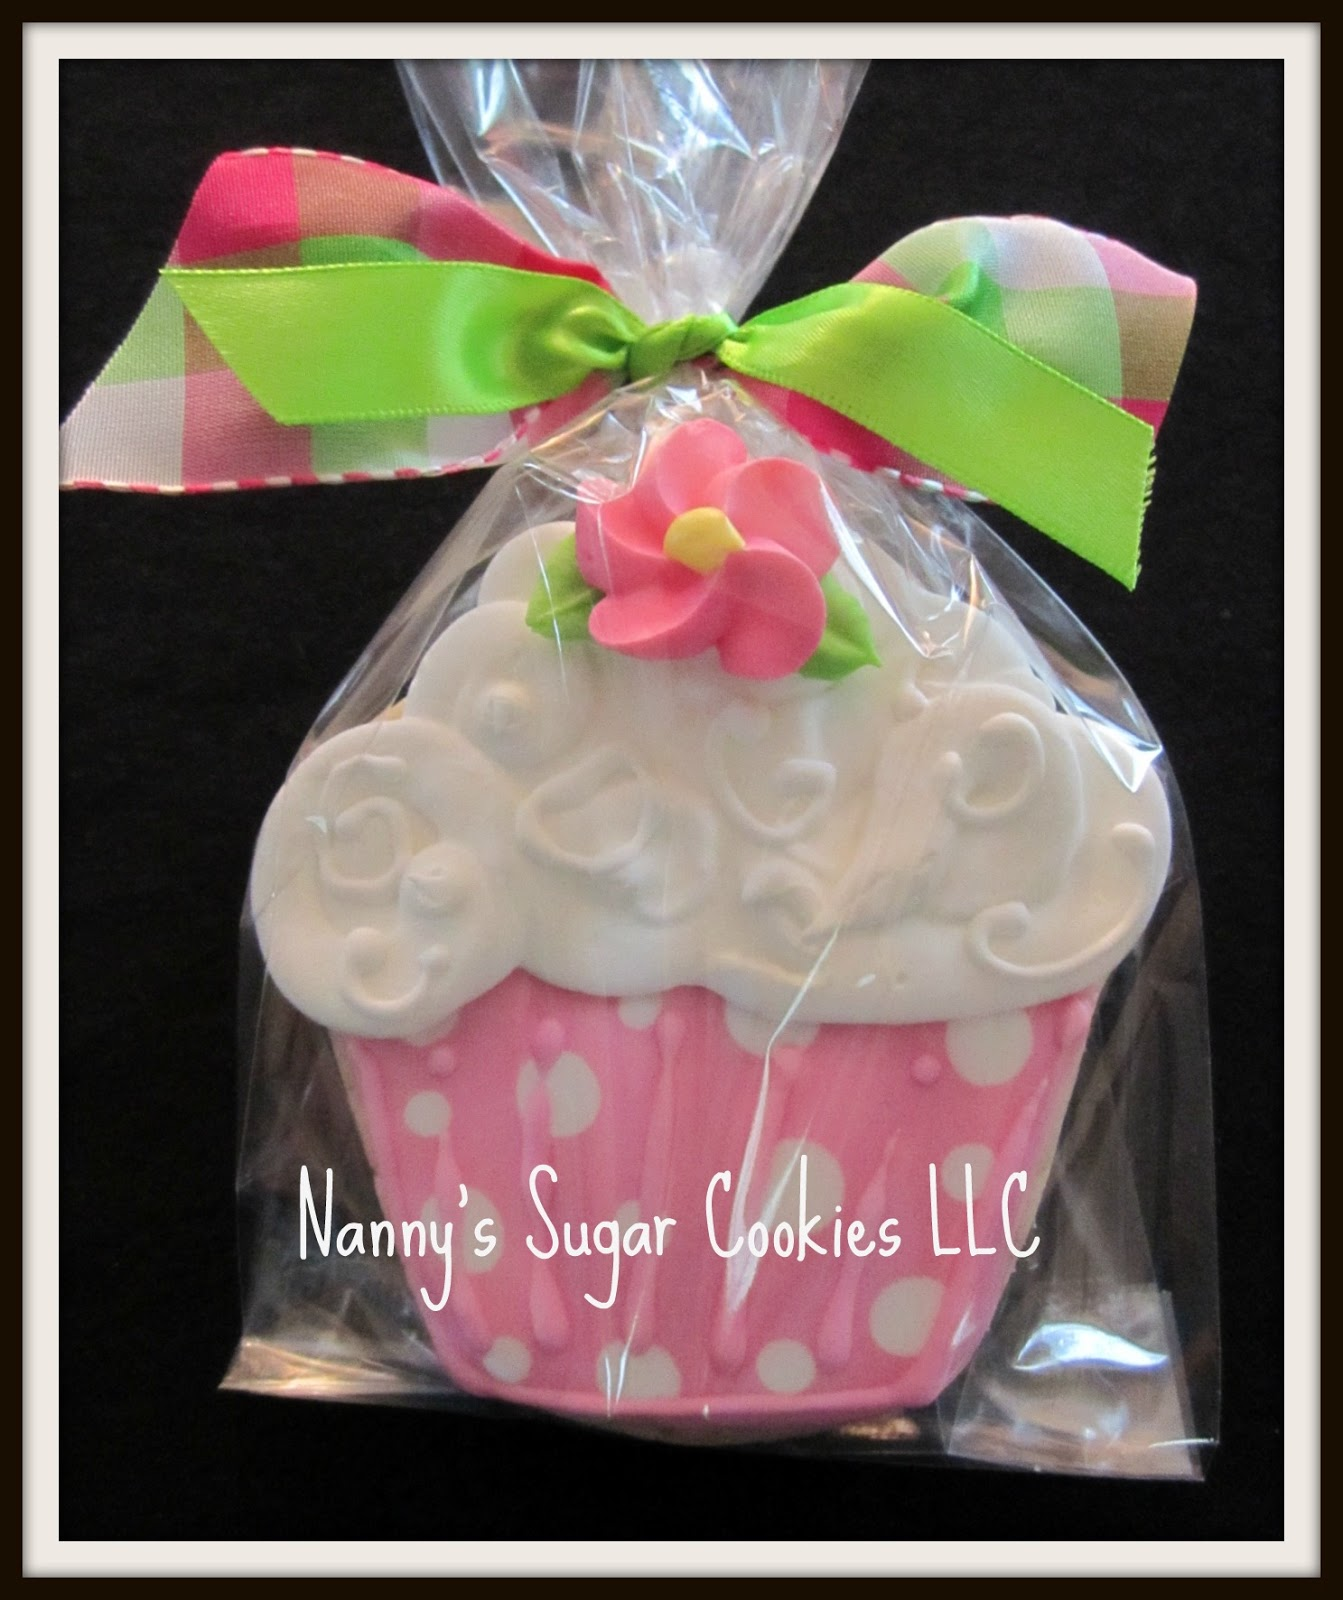 Nanny\'s Sugar Cookies LLC: Cookie Favors perfect for everyday....